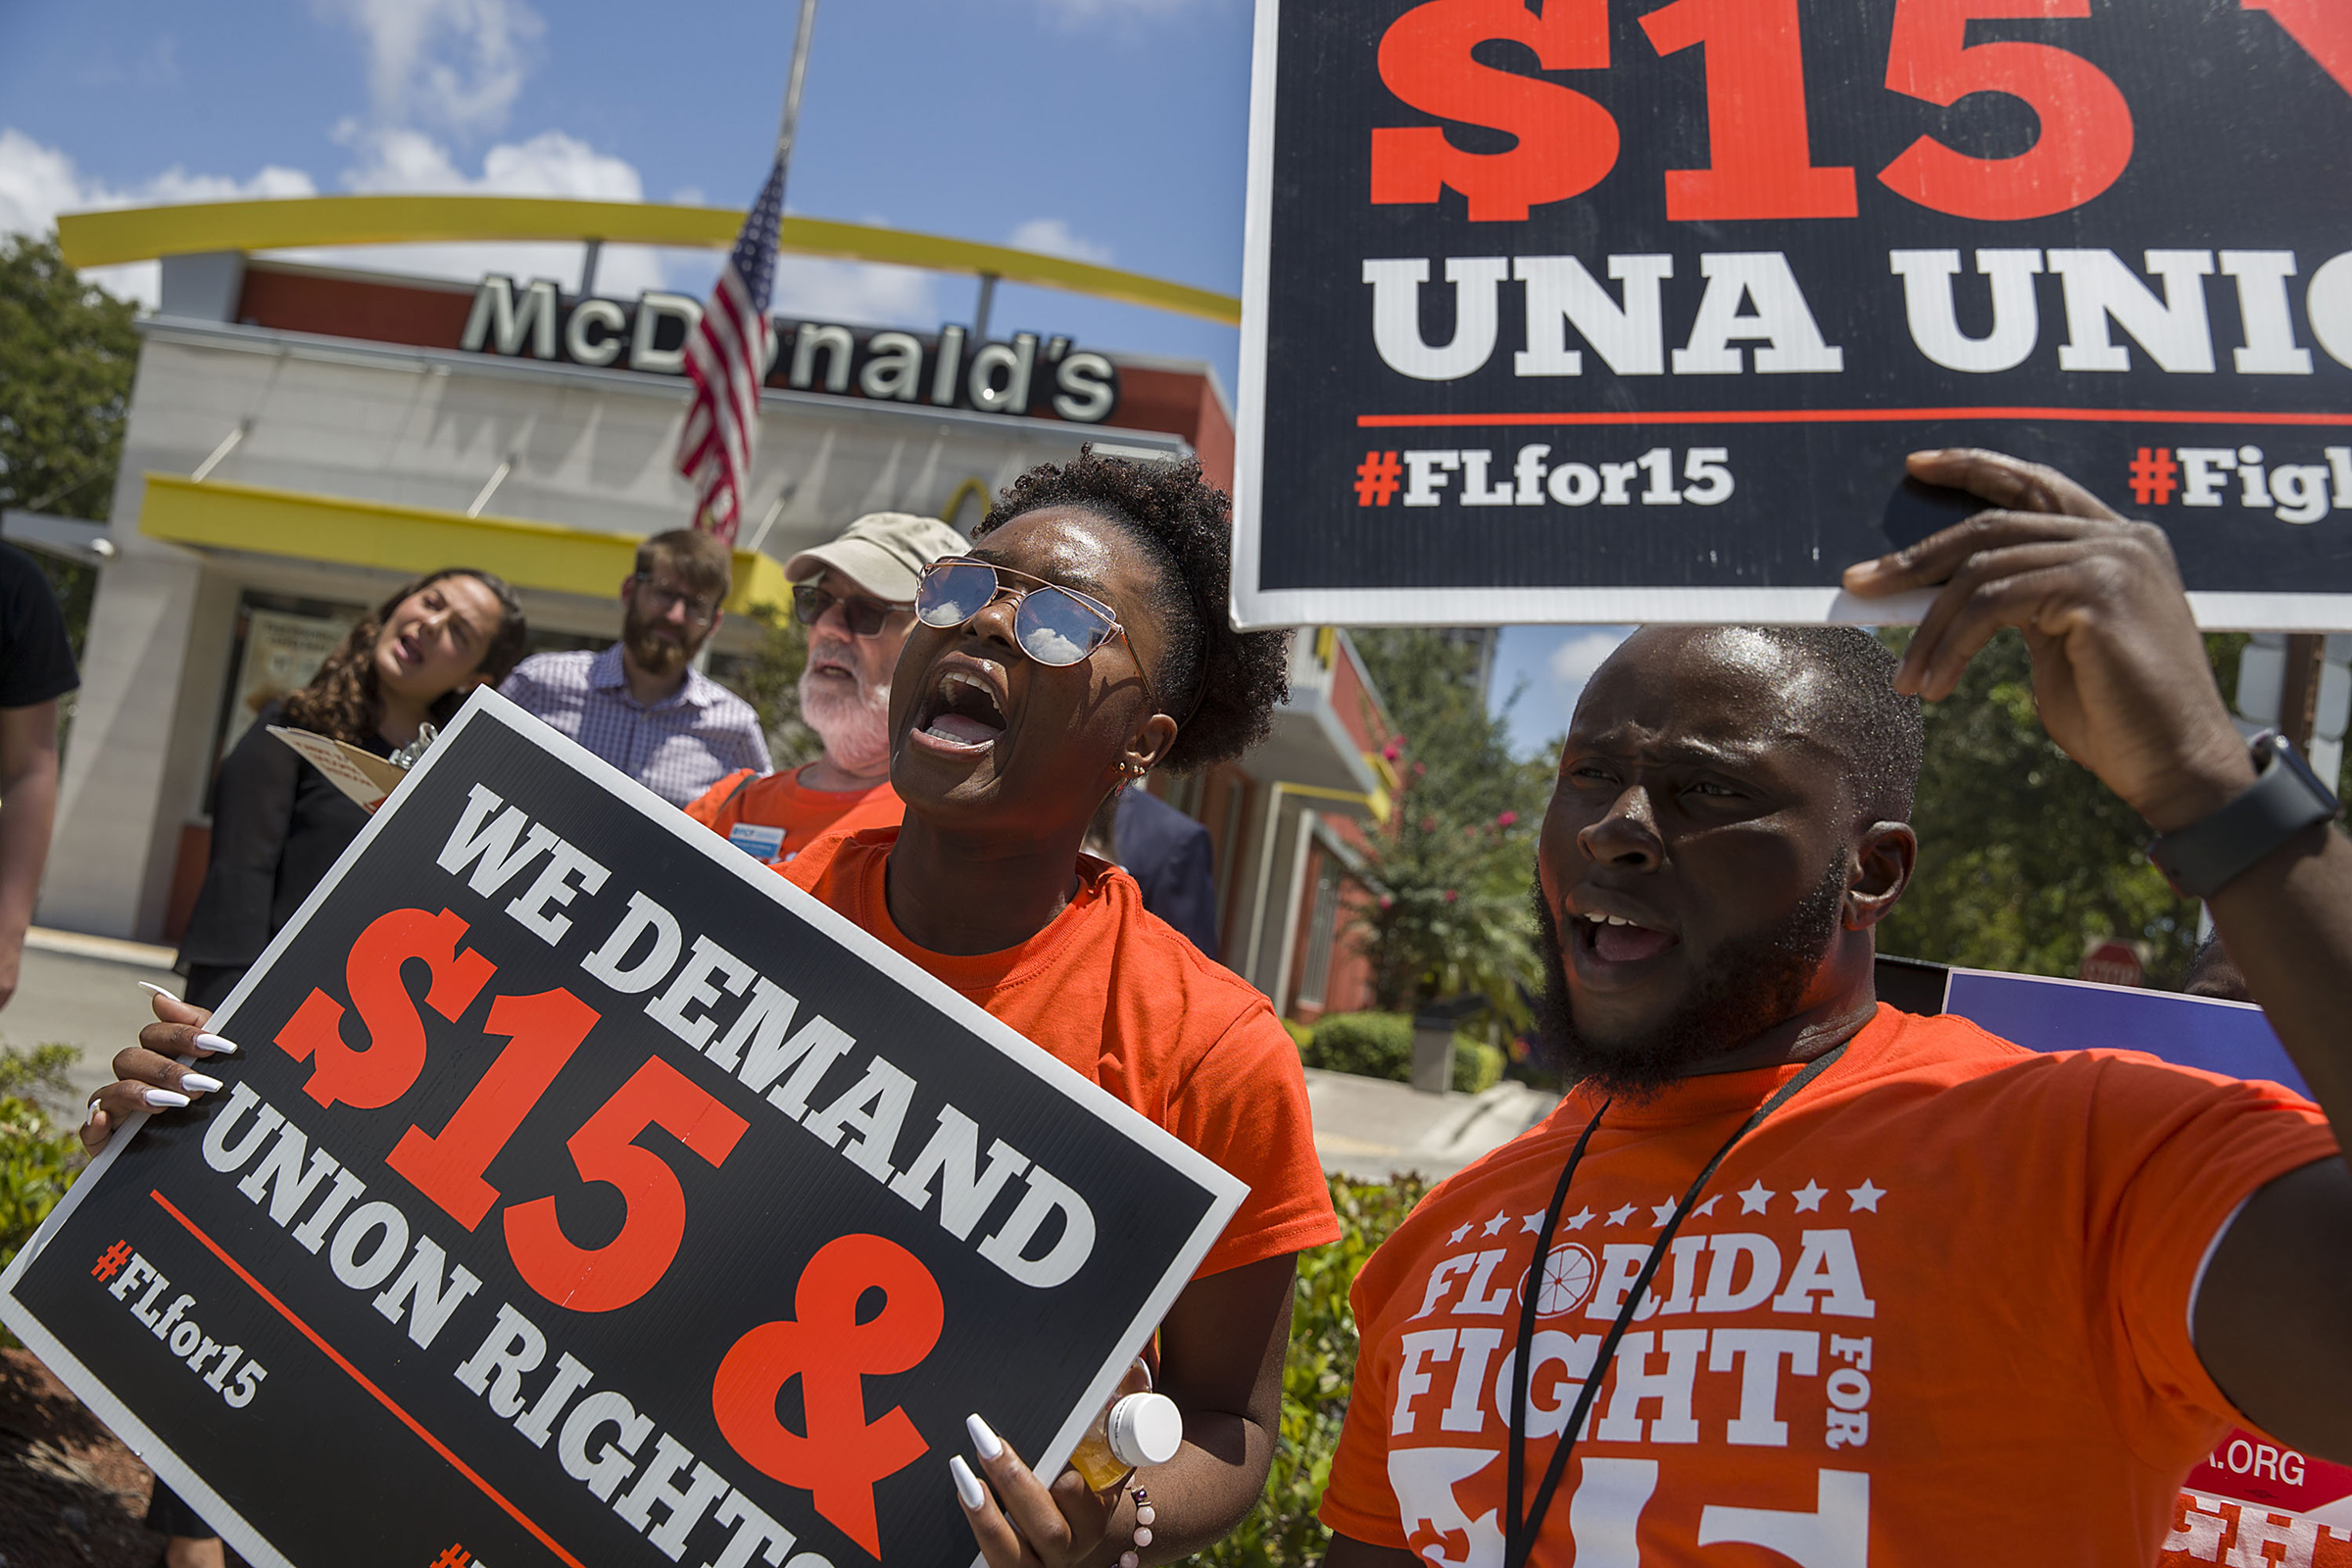 People gather together to ask  the McDonald's corporation to raise workers wages to a $15 minimum wage in Fort Lauderdale, Florida,  on May 23, 2019.